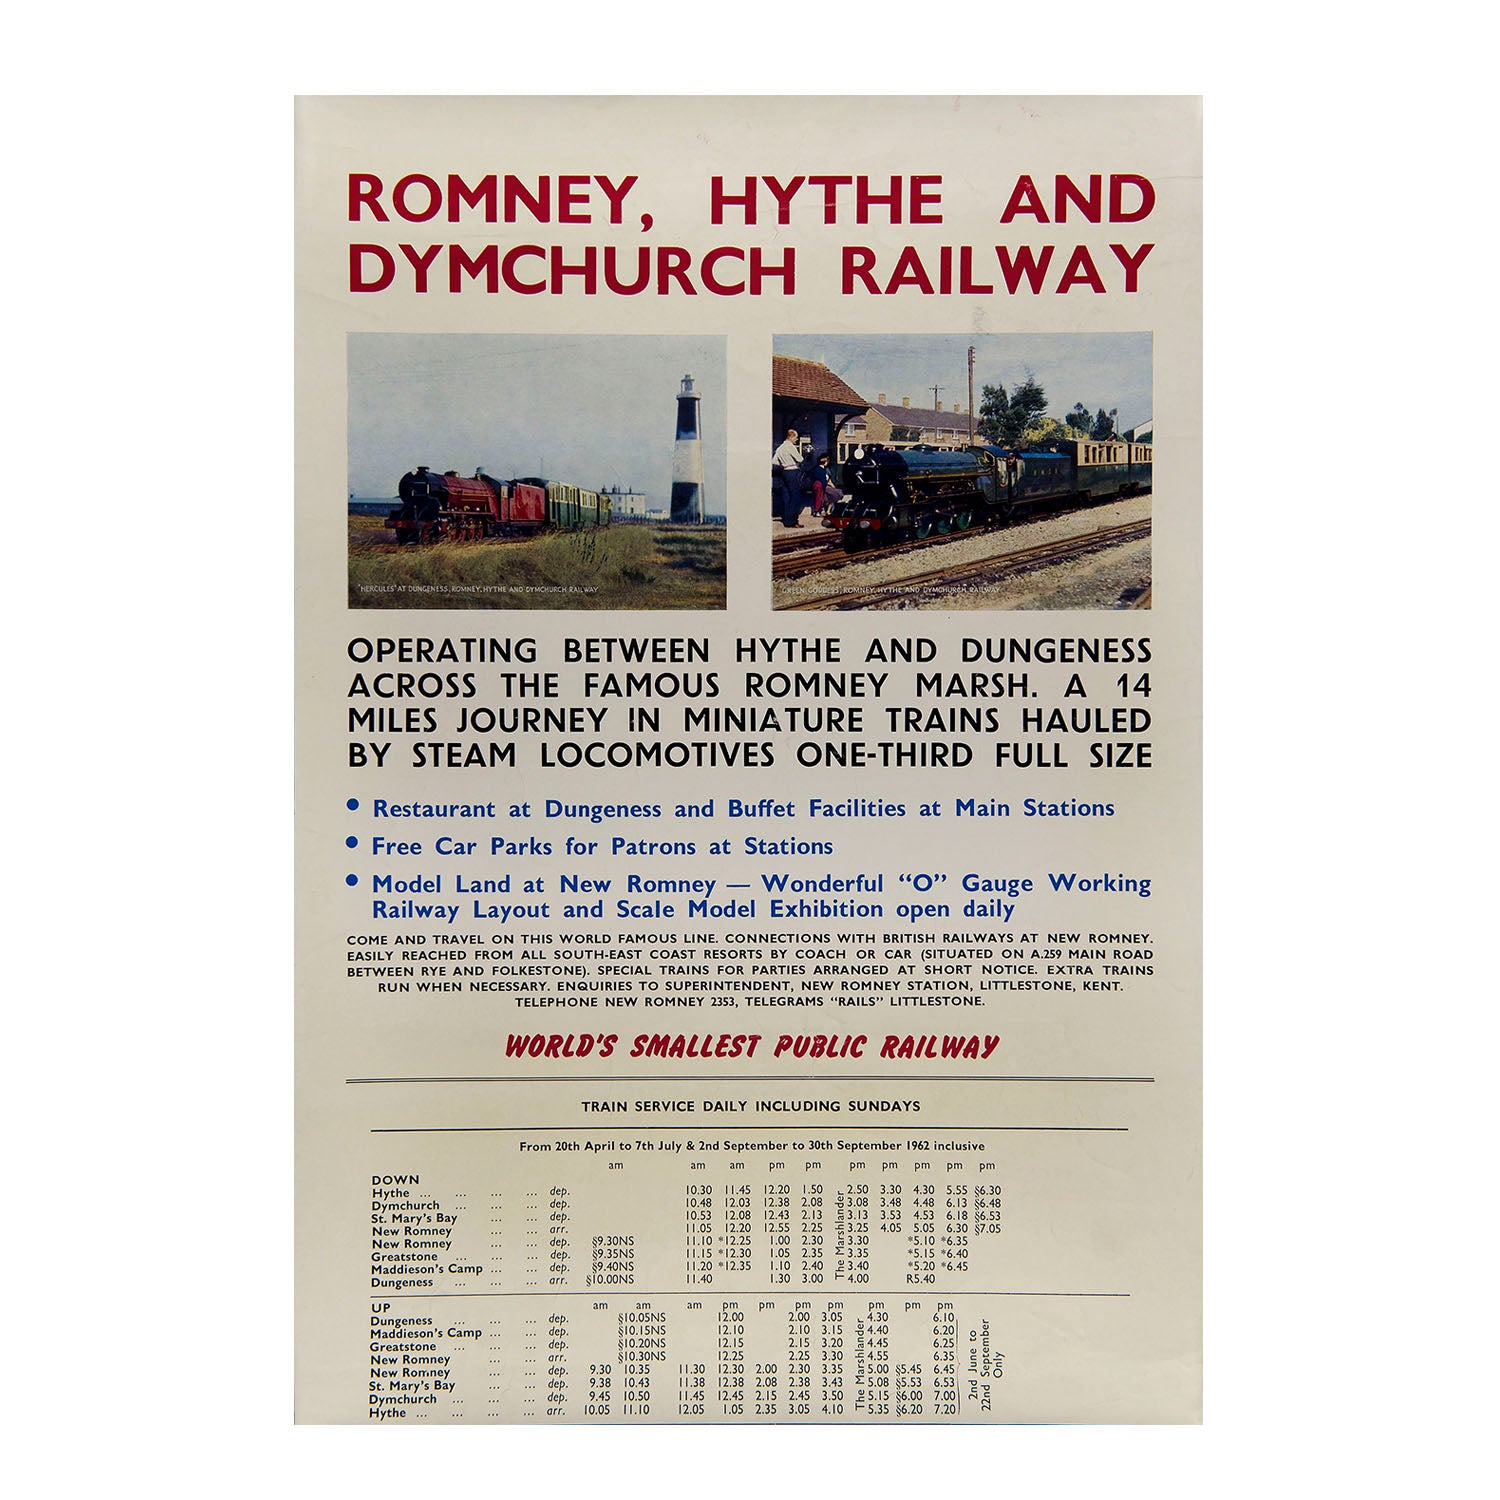 Romney, Hythe and Dymchurch Railway. Timetable